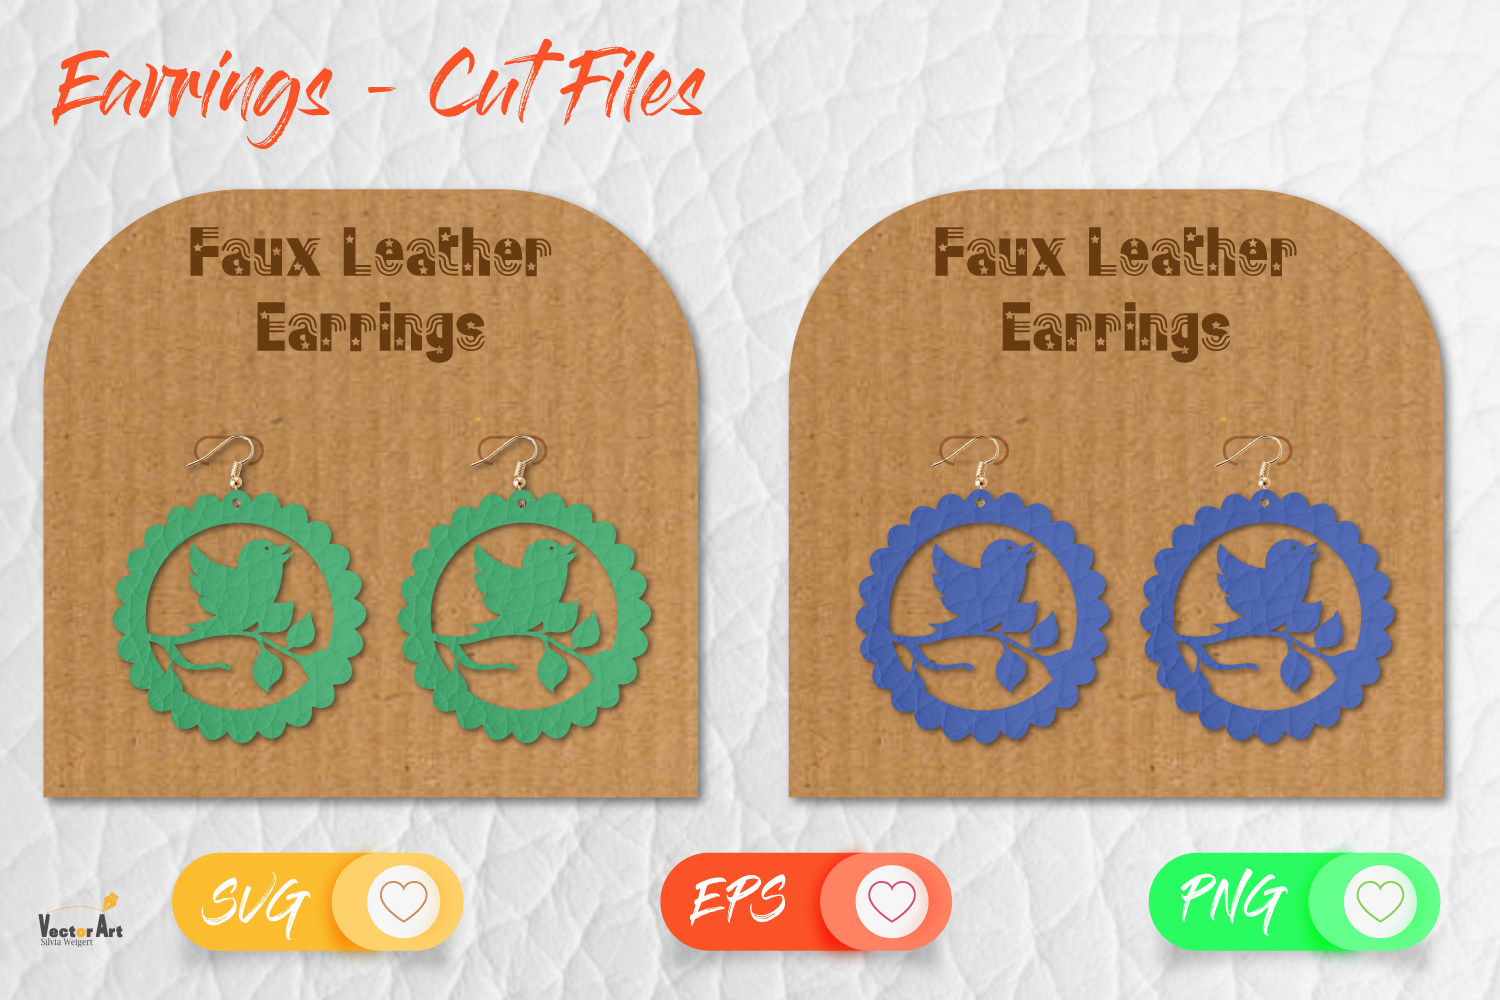 5 Earrings - Mini Bundle - Cut files example image 4